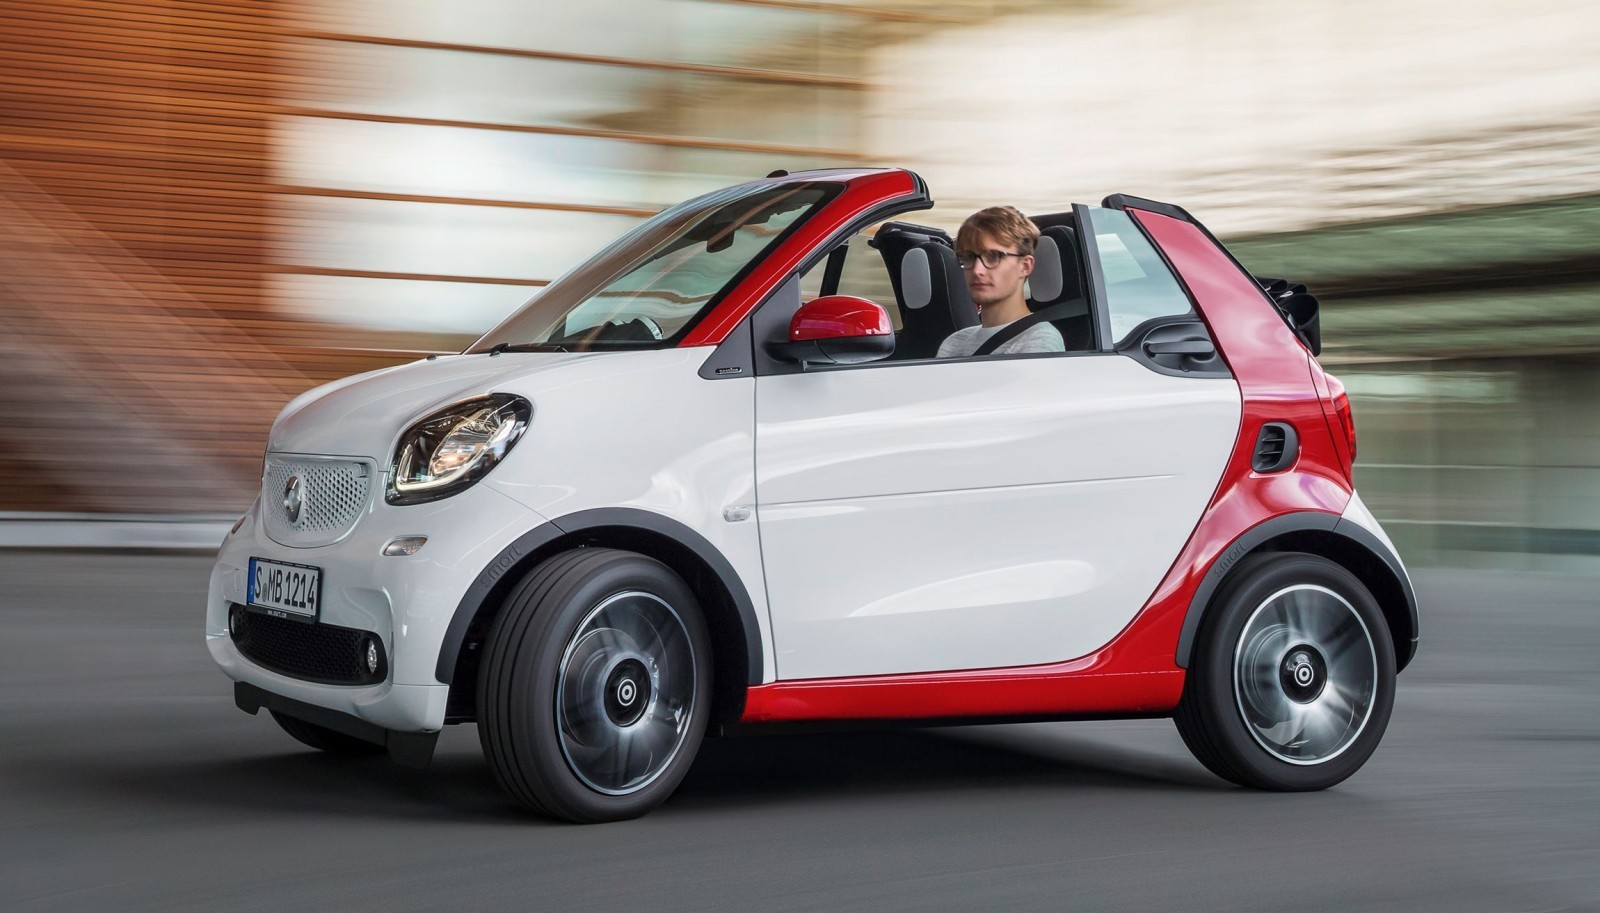 new and used smart fortwo prices photos reviews specs autos post. Black Bedroom Furniture Sets. Home Design Ideas